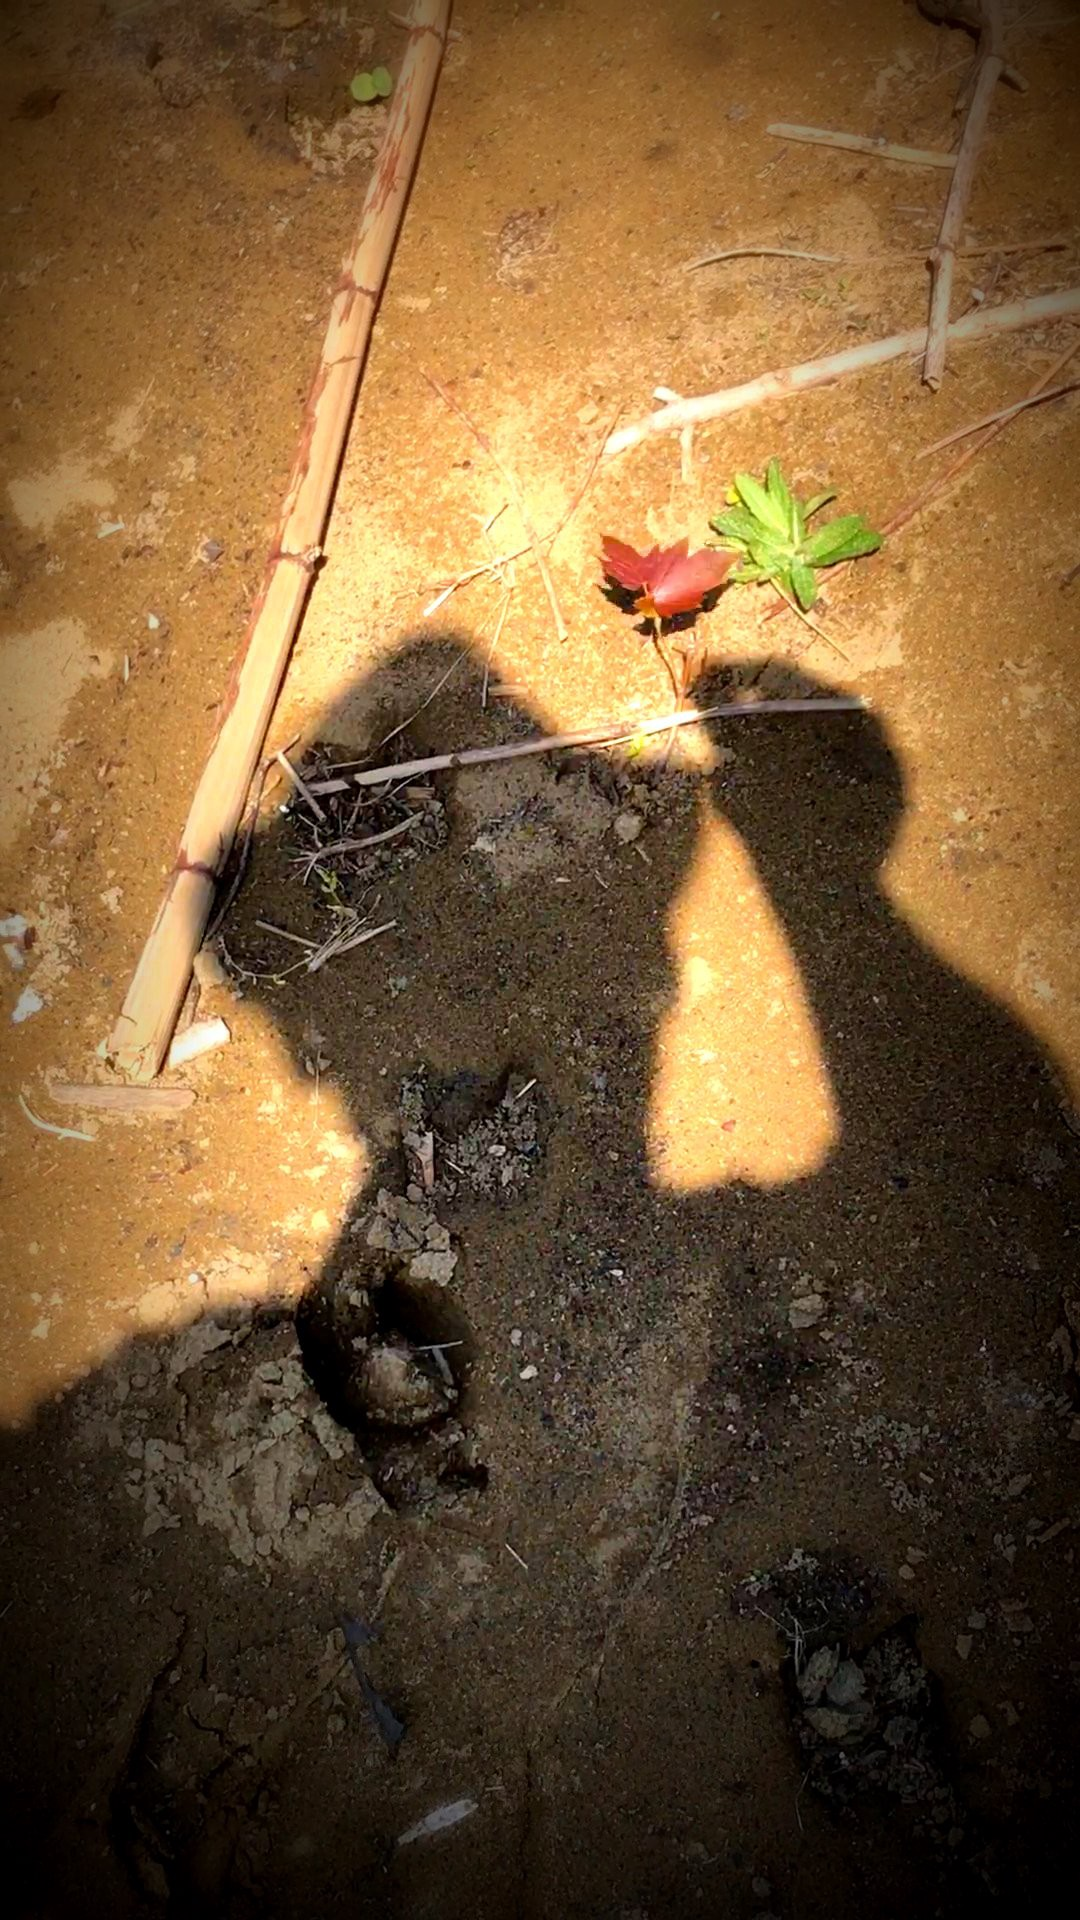 Photograph of my shadow grasping a seedling